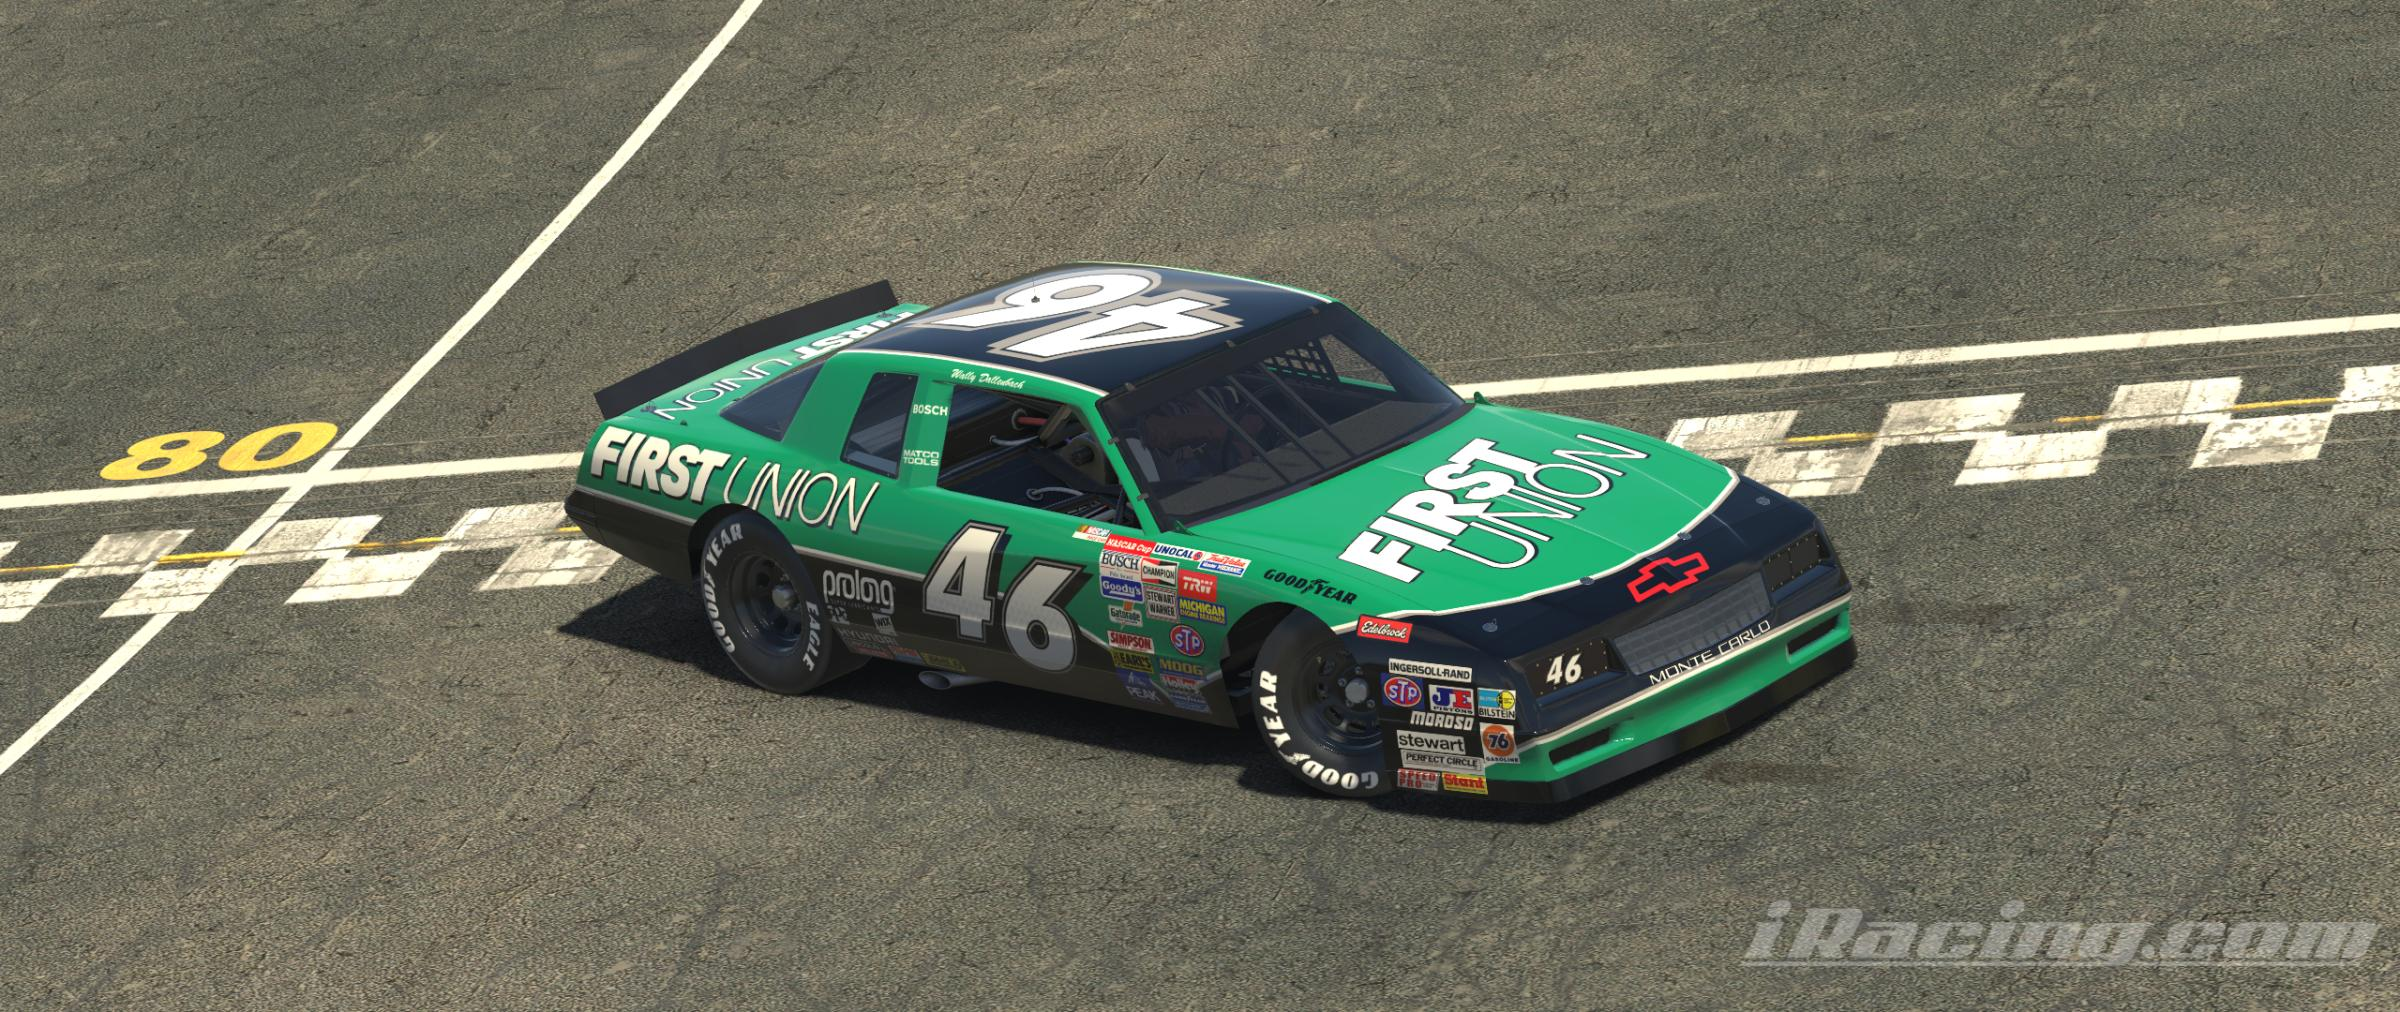 Preview of Wally Dallenbach 1998 First Union Monte Carlo (No Number) by Evan Pienta